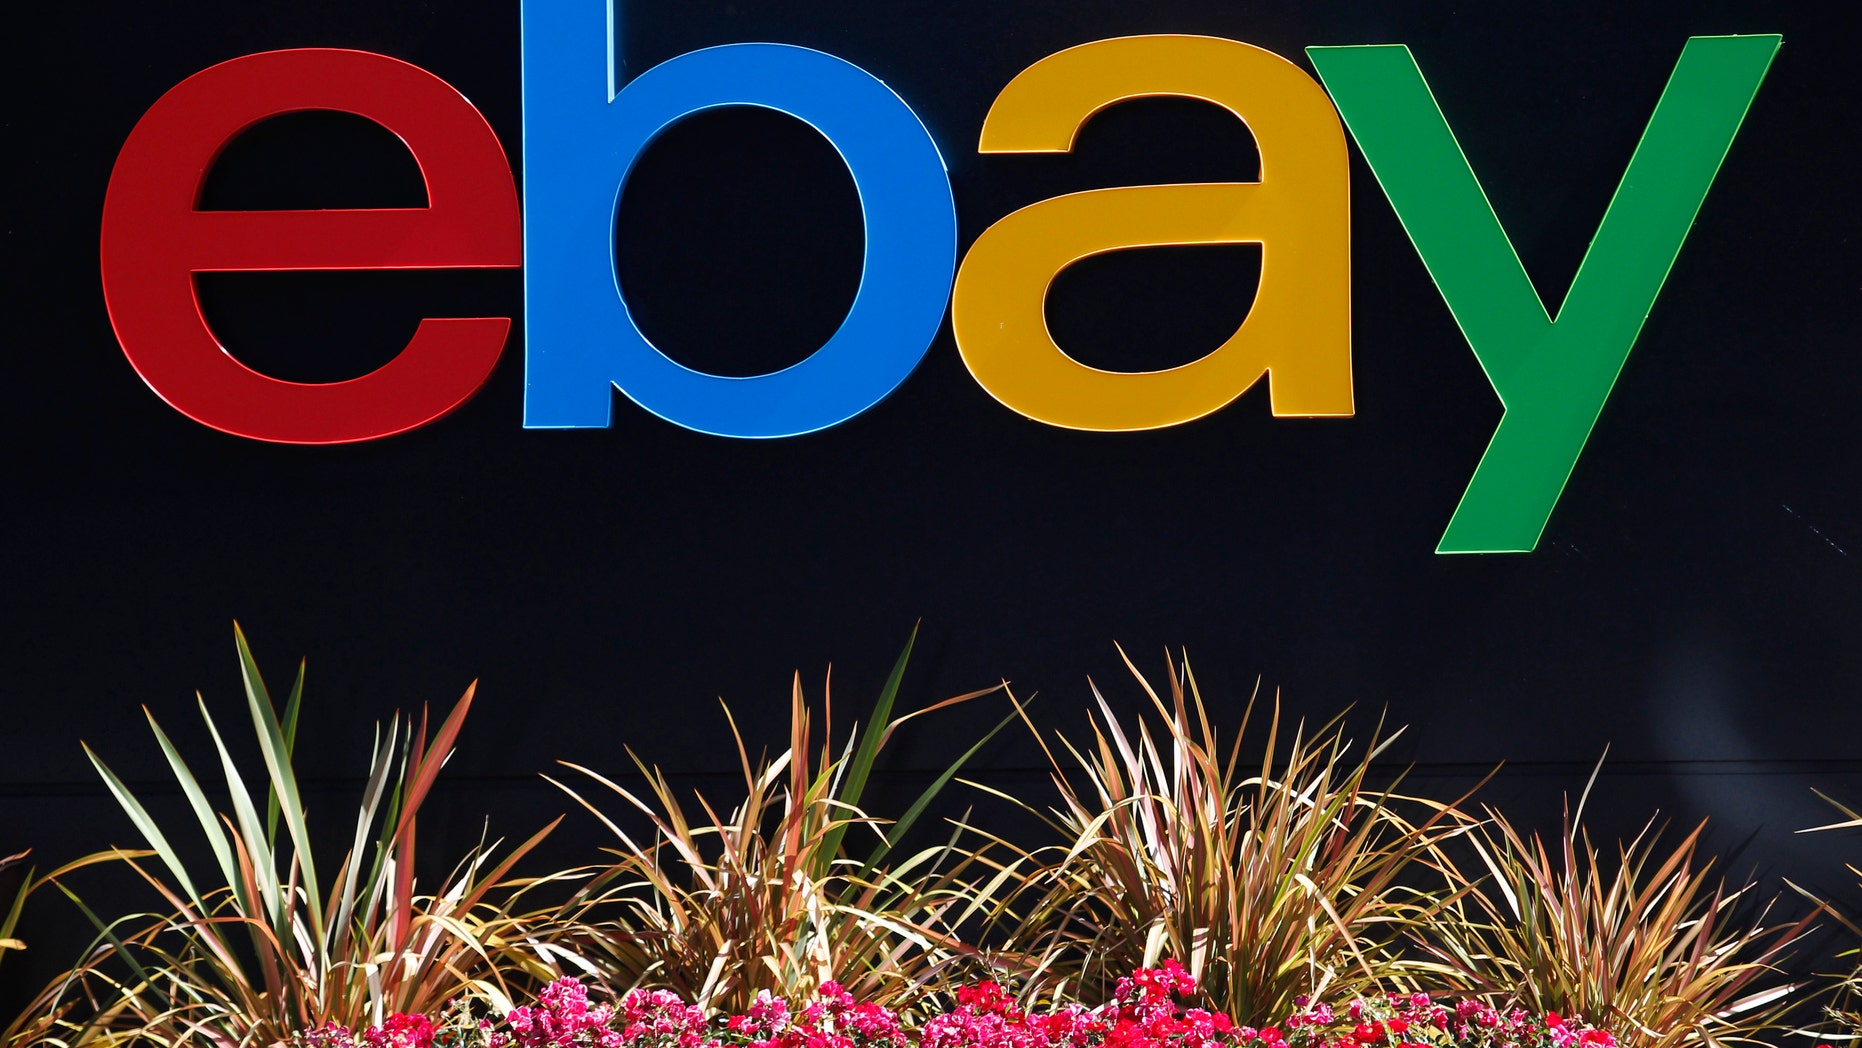 An eBay sign is seen at an office building in San Jose, California May 28, 2014. REUTERS/Beck Diefenbach (UNITED STATES - Tags: BUSINESS LOGO) - RTR3RALQ